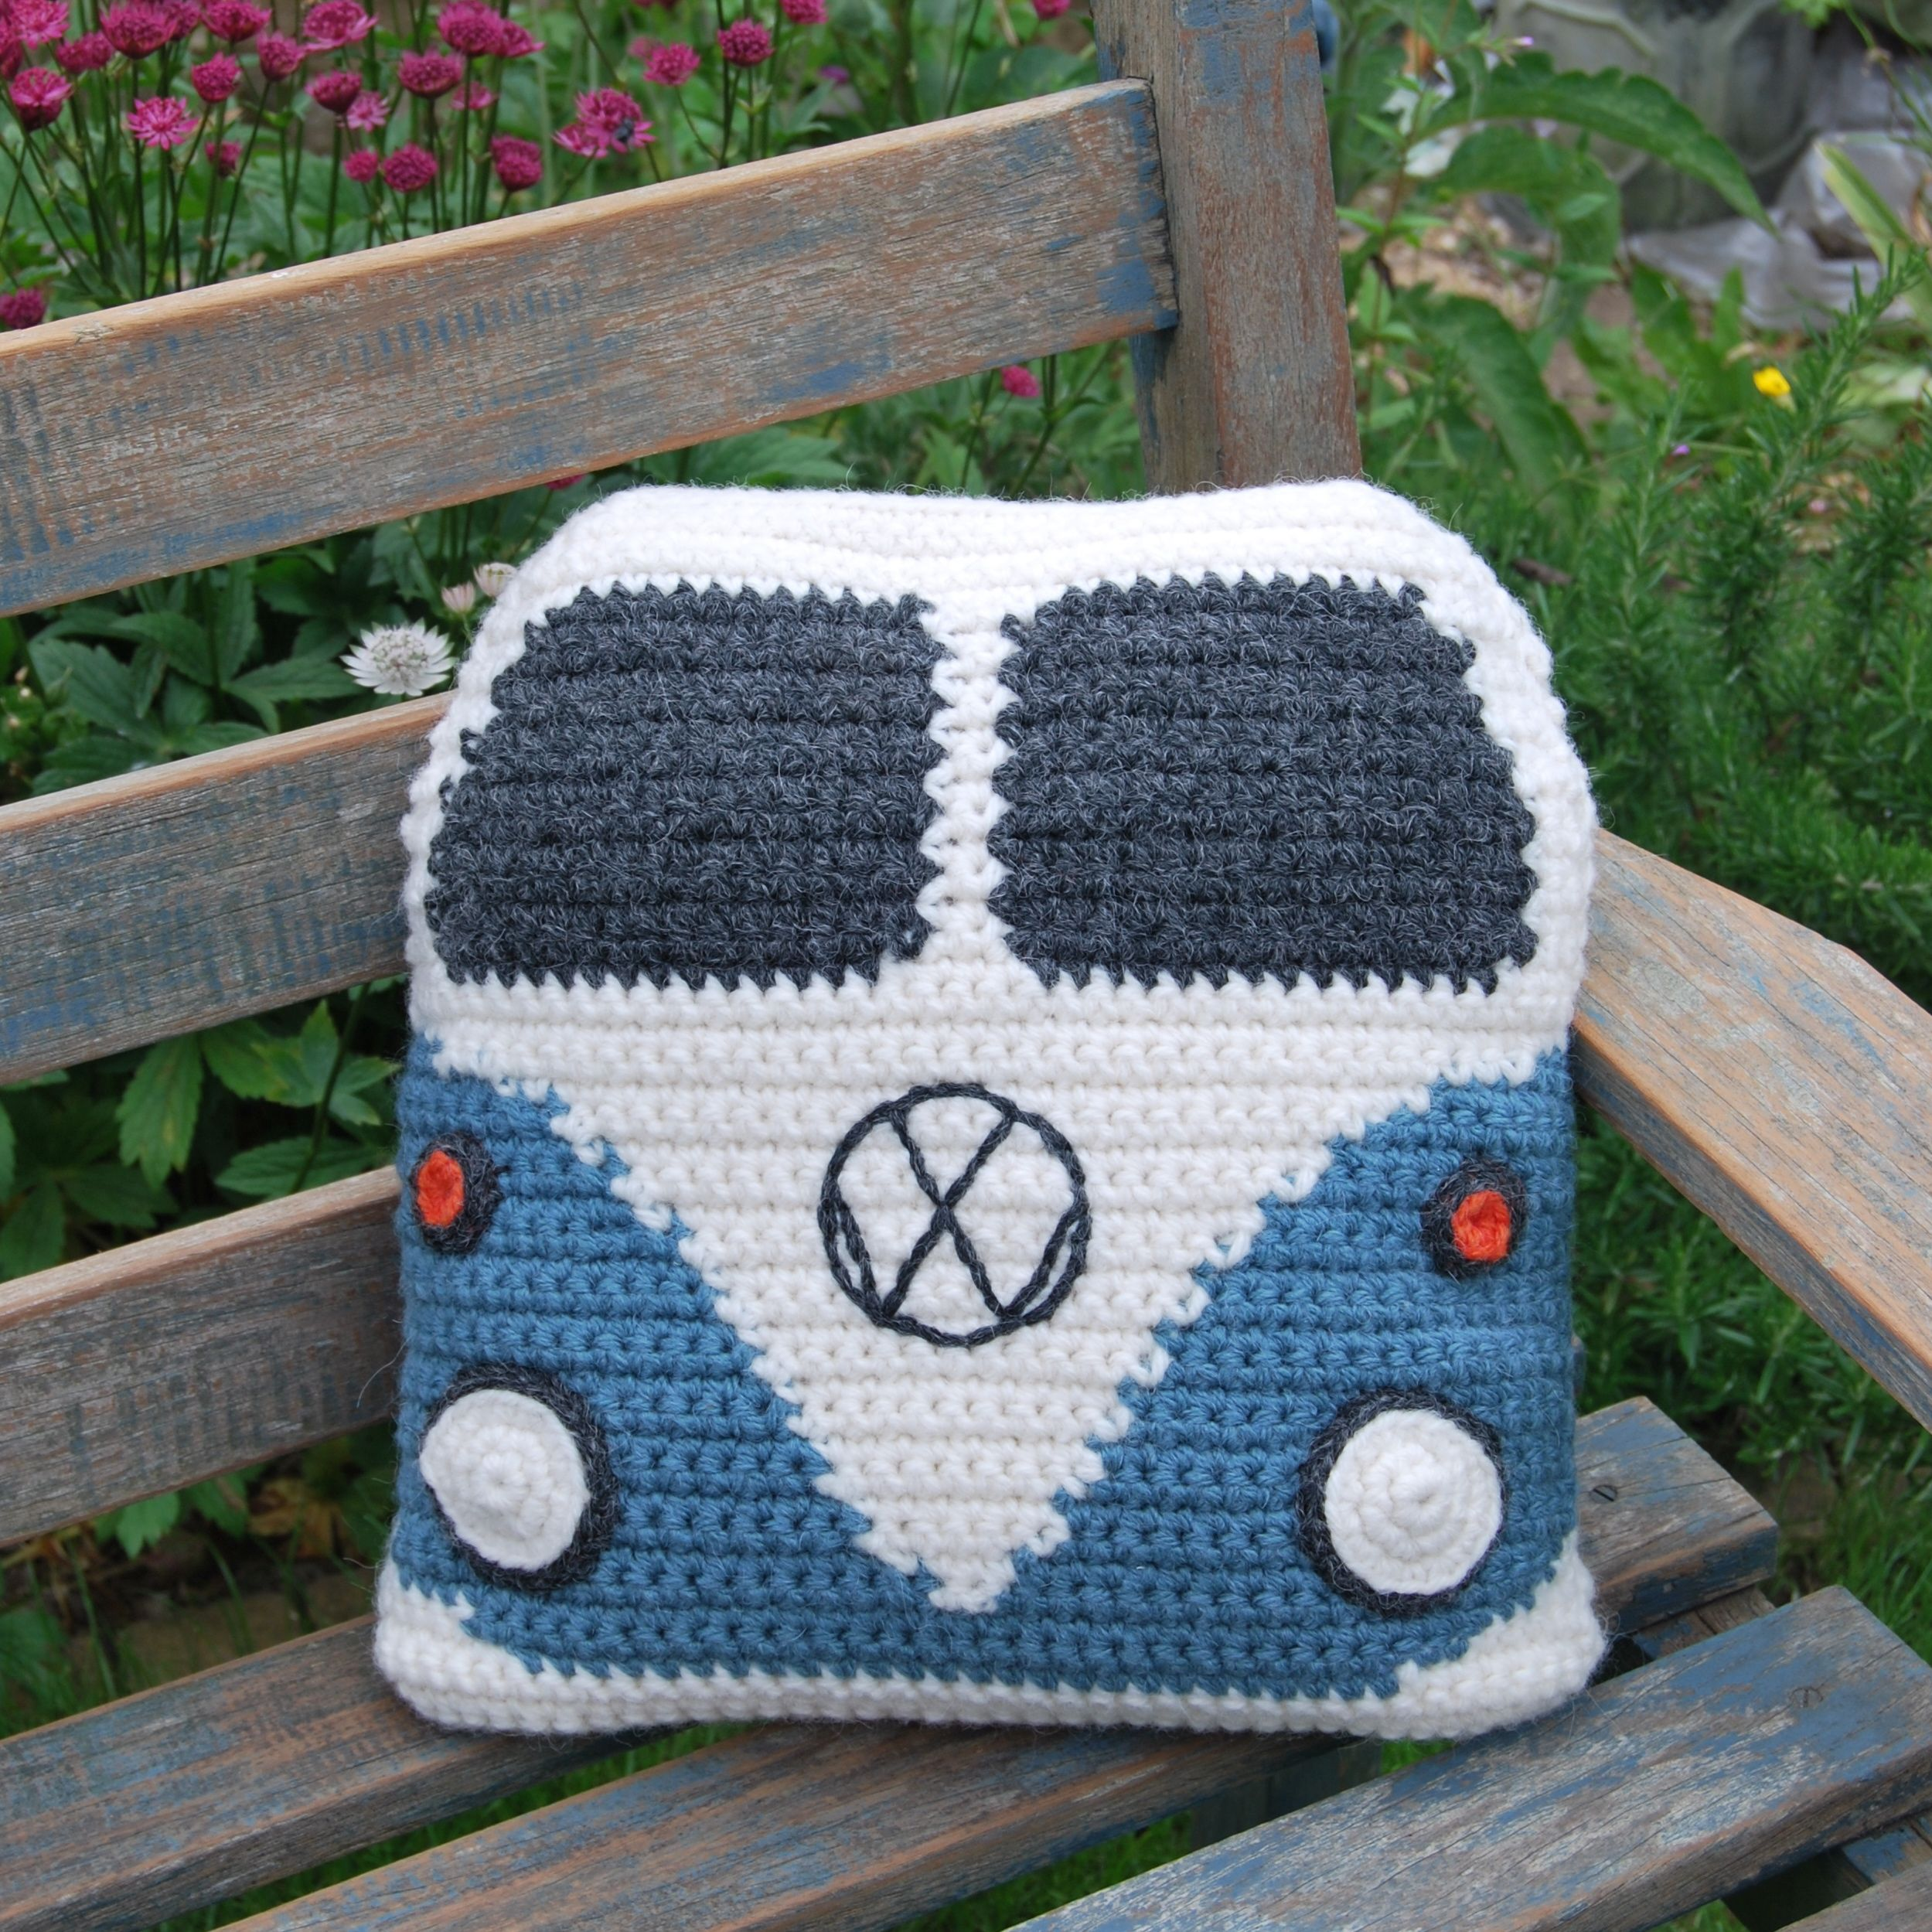 crochet a campervan cushion cover this pattern creates a square cushion and has a pattern for the back of the van cushion